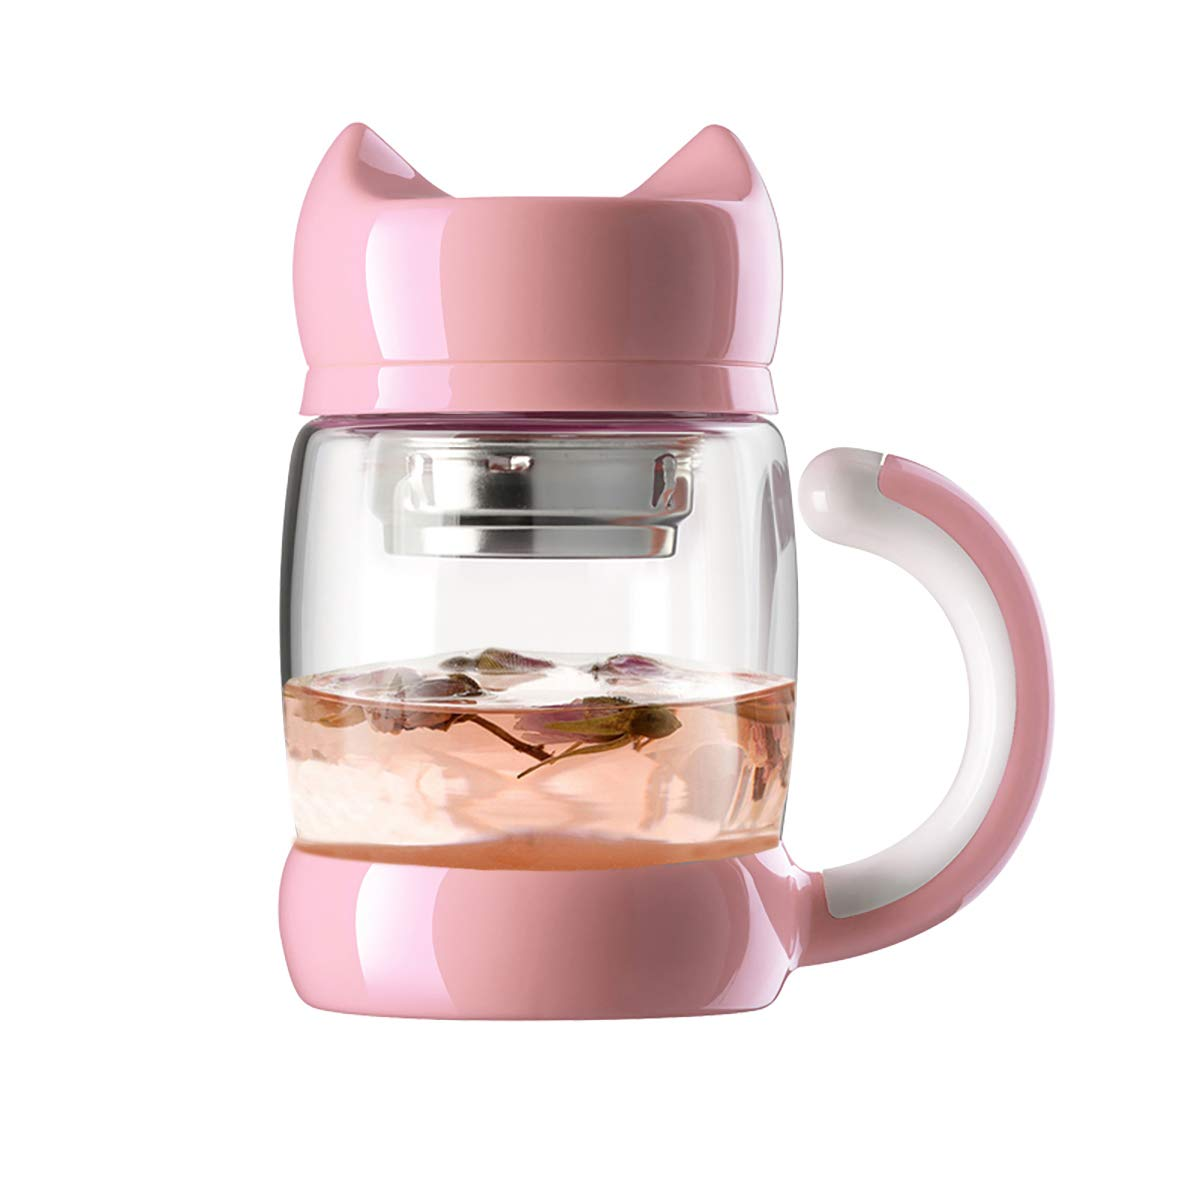 Cute Cat Tea Cups with Strainer/Infuser - 420 ml / 14 oz Portable Heat Resistant Glass Cat Tail Tea/Coffee Mugs - Best Gift for Tea/Cat lovers (Light Pink)